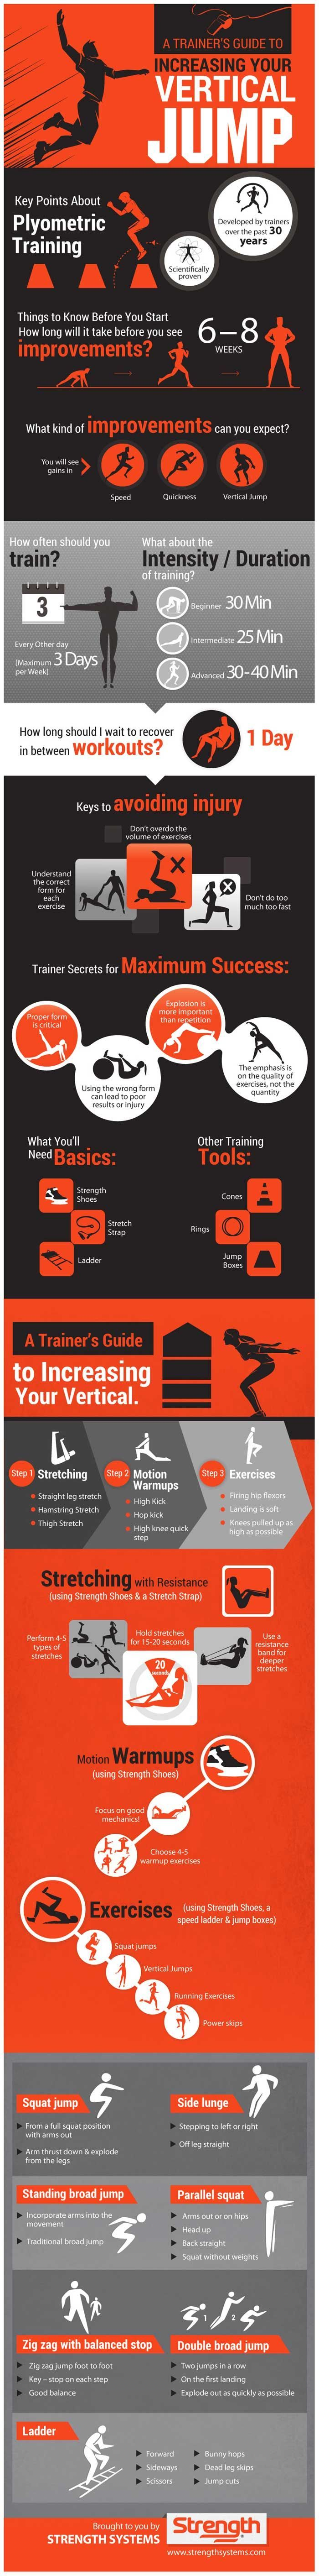 Tips to Increase Your Vertical Jump - TIPSÖGRAPHIC